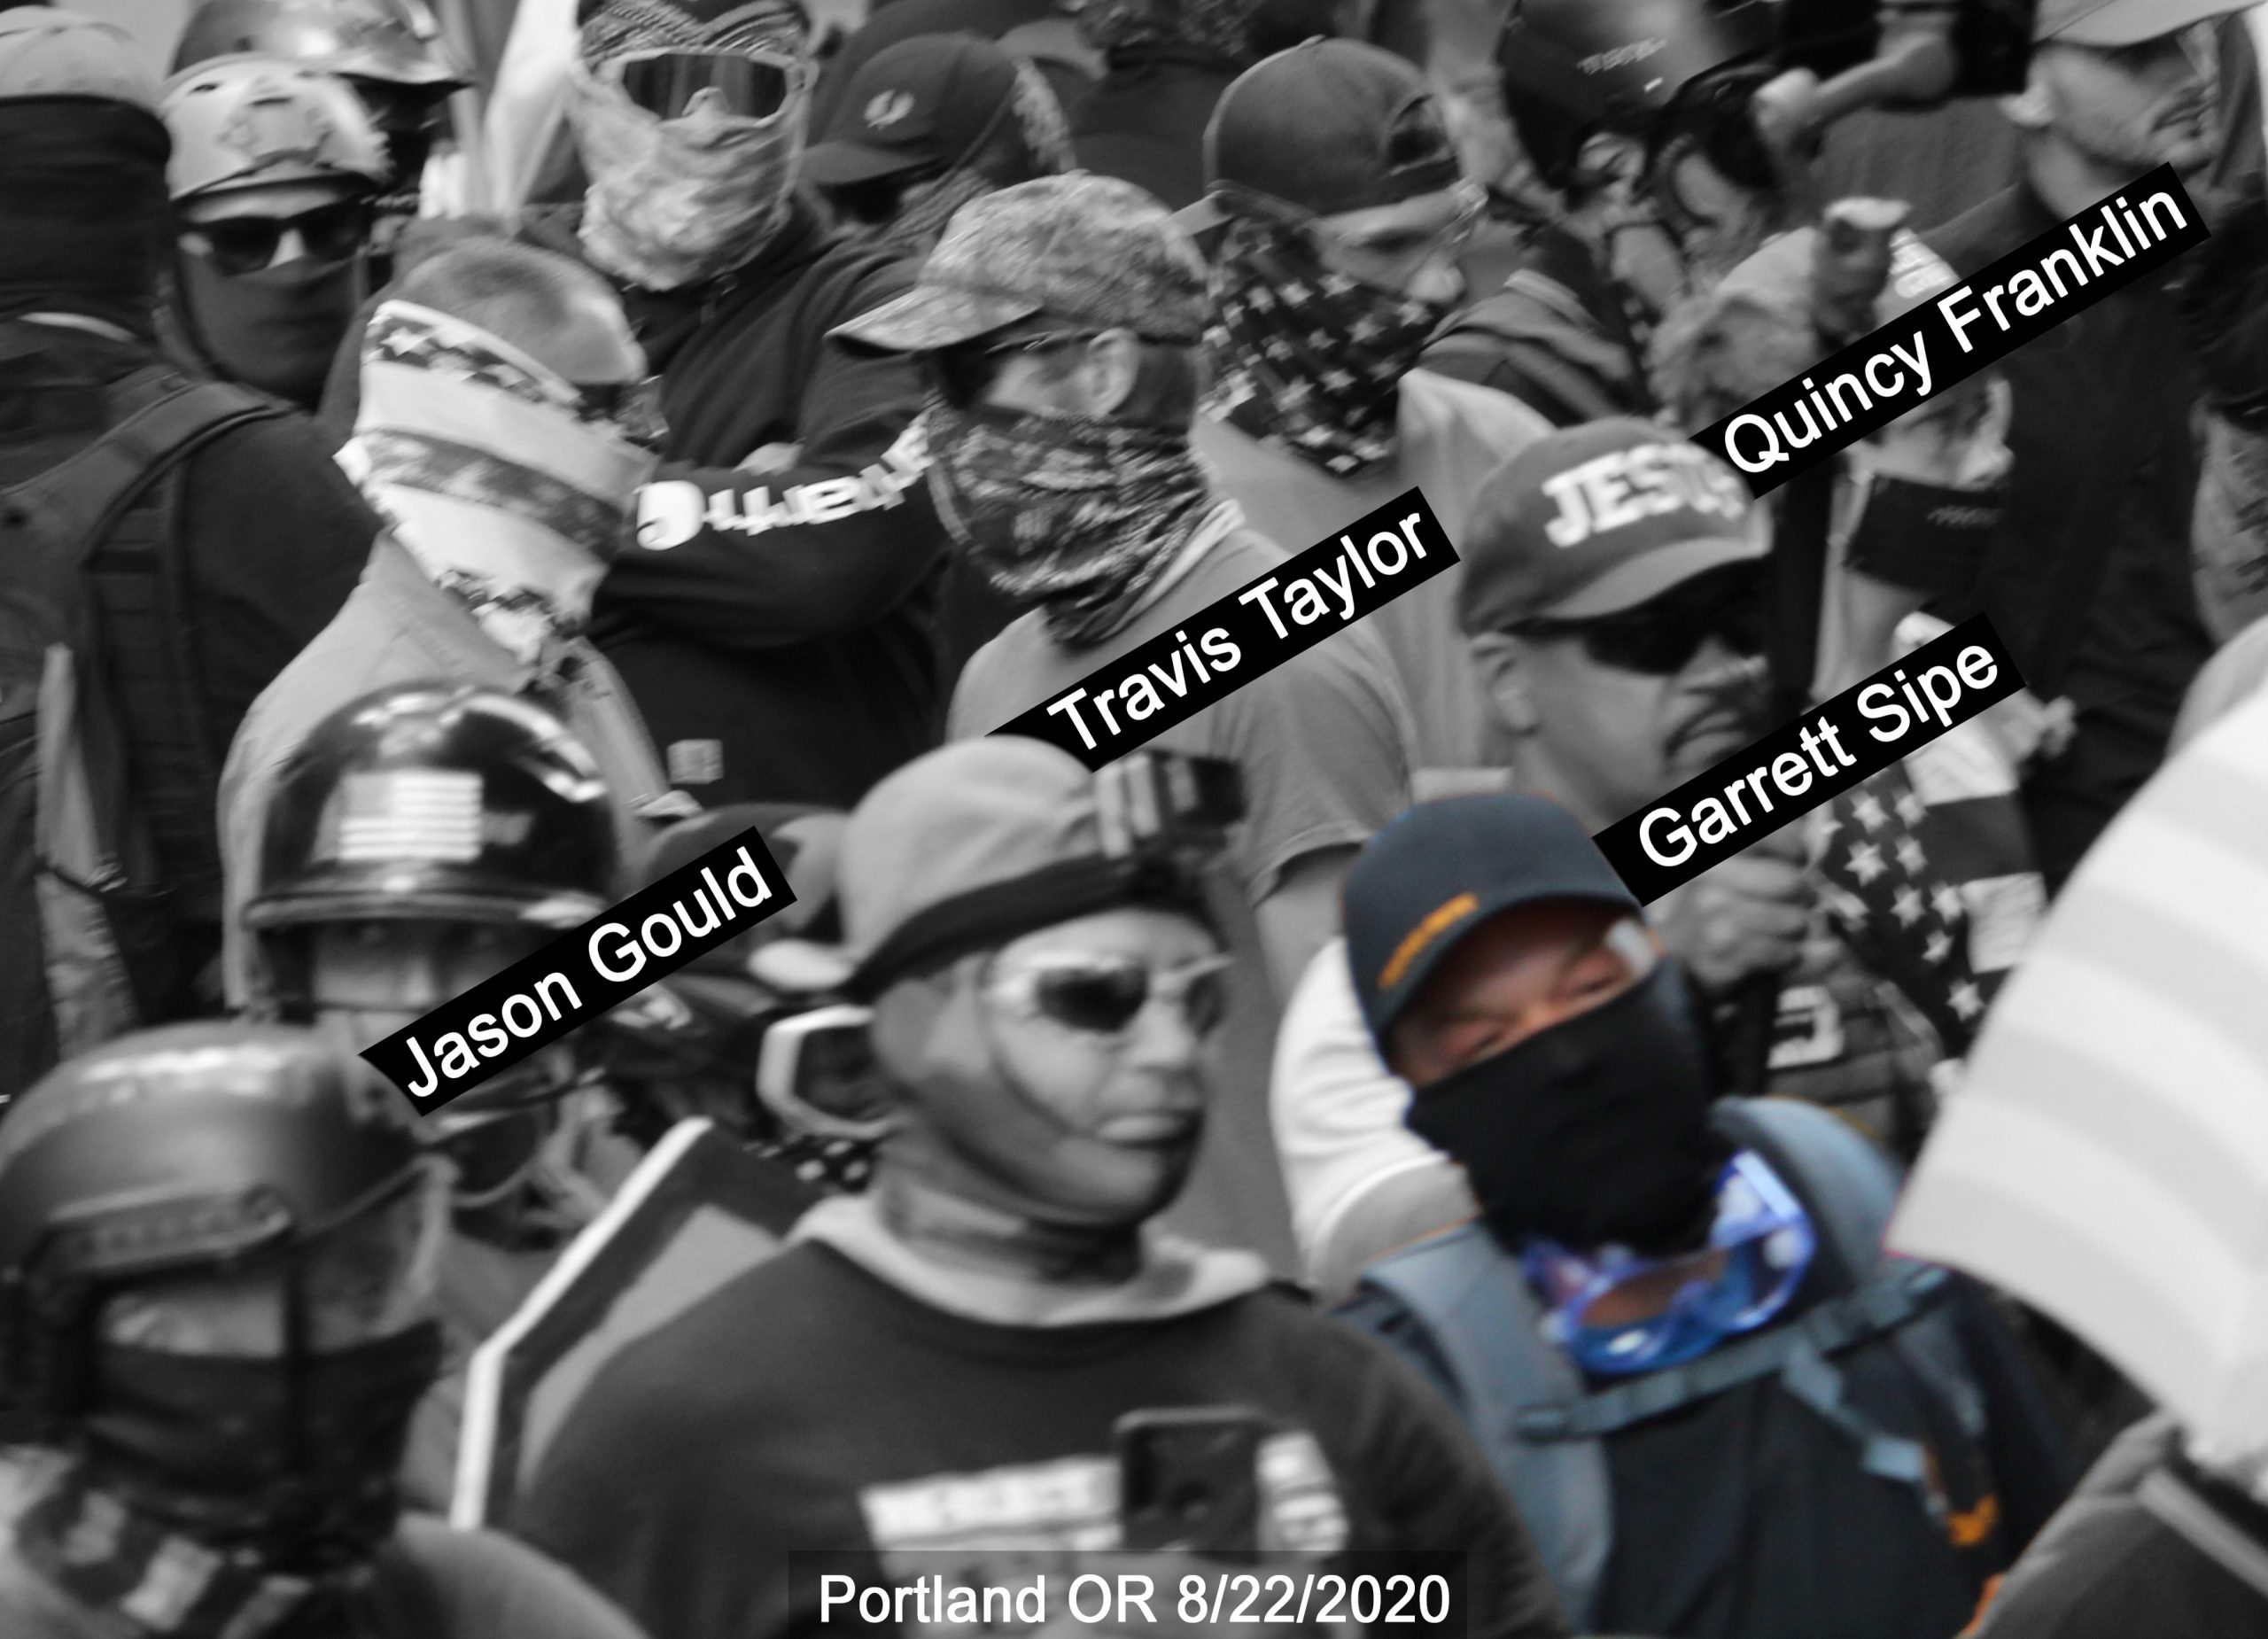 Garrett Sipe stands with other violent fascists in PDX on August 22 2020